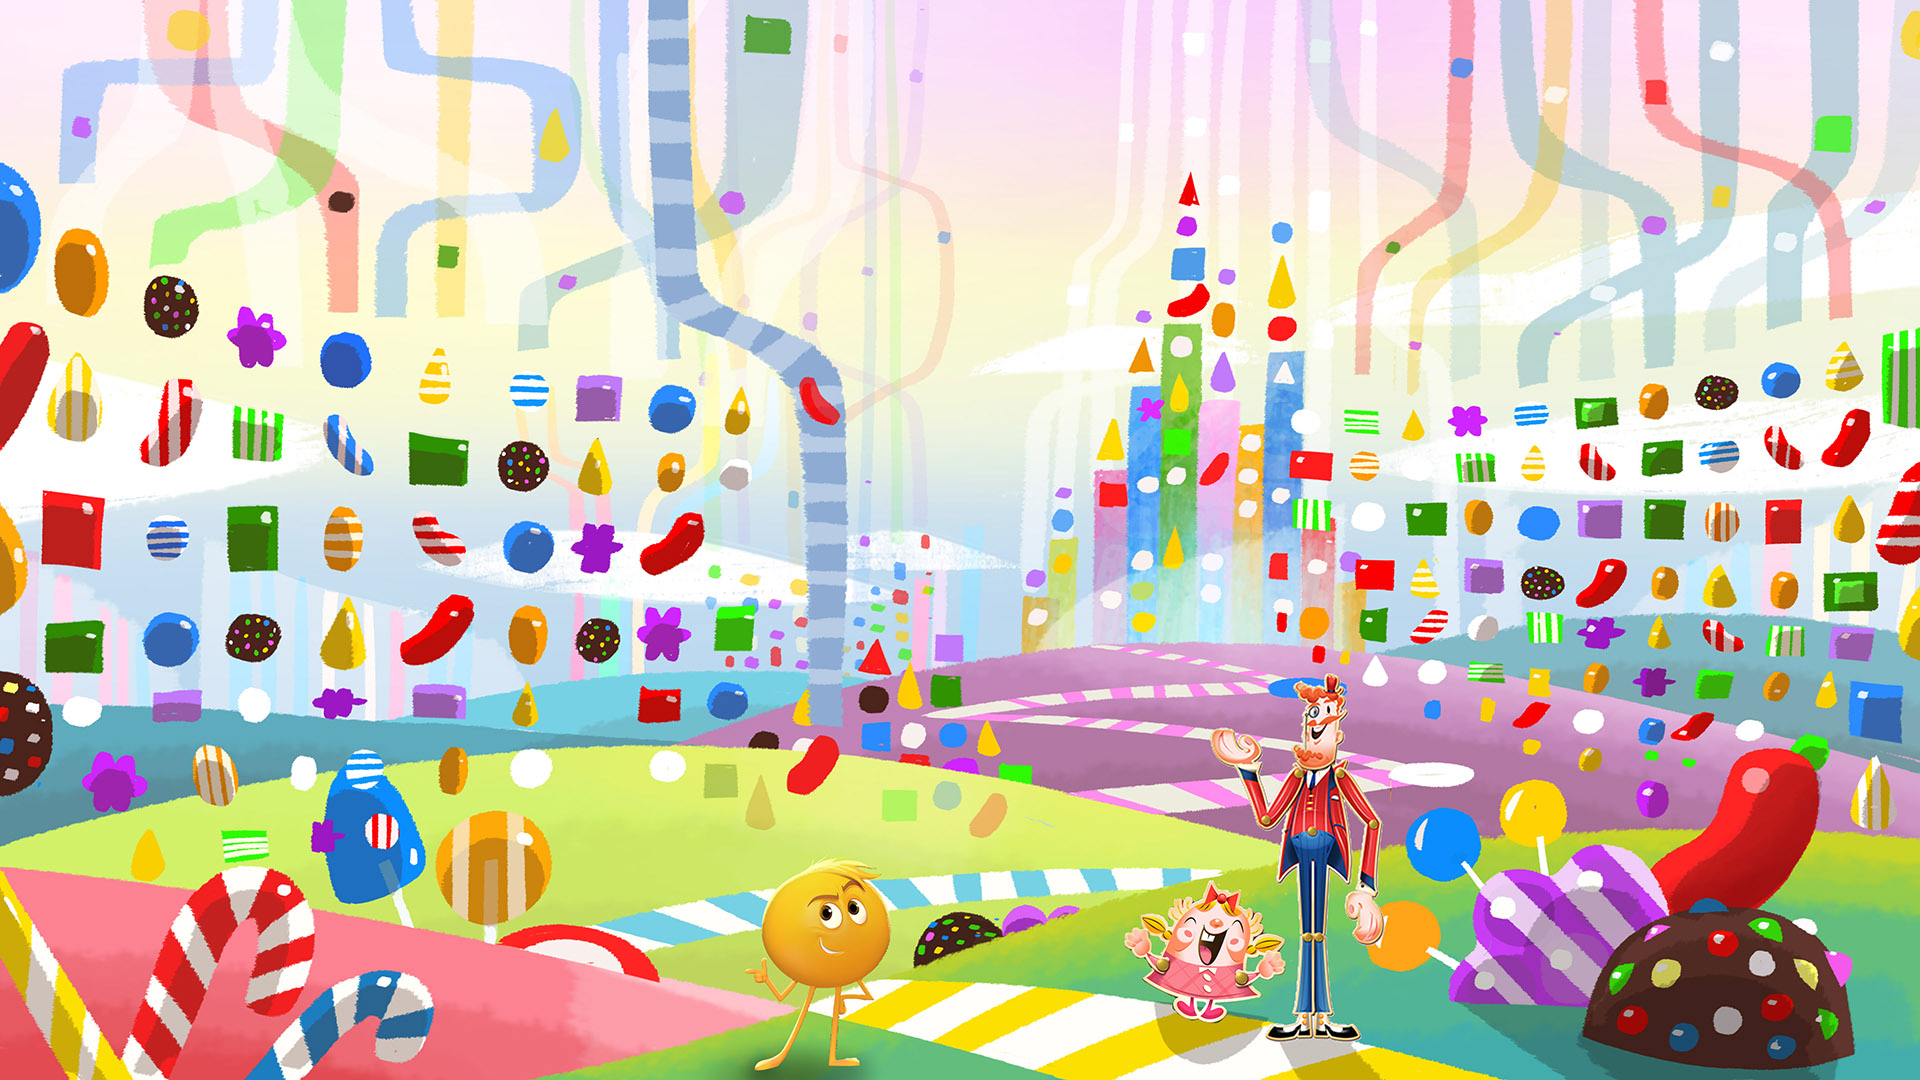 Candy Crush App concept